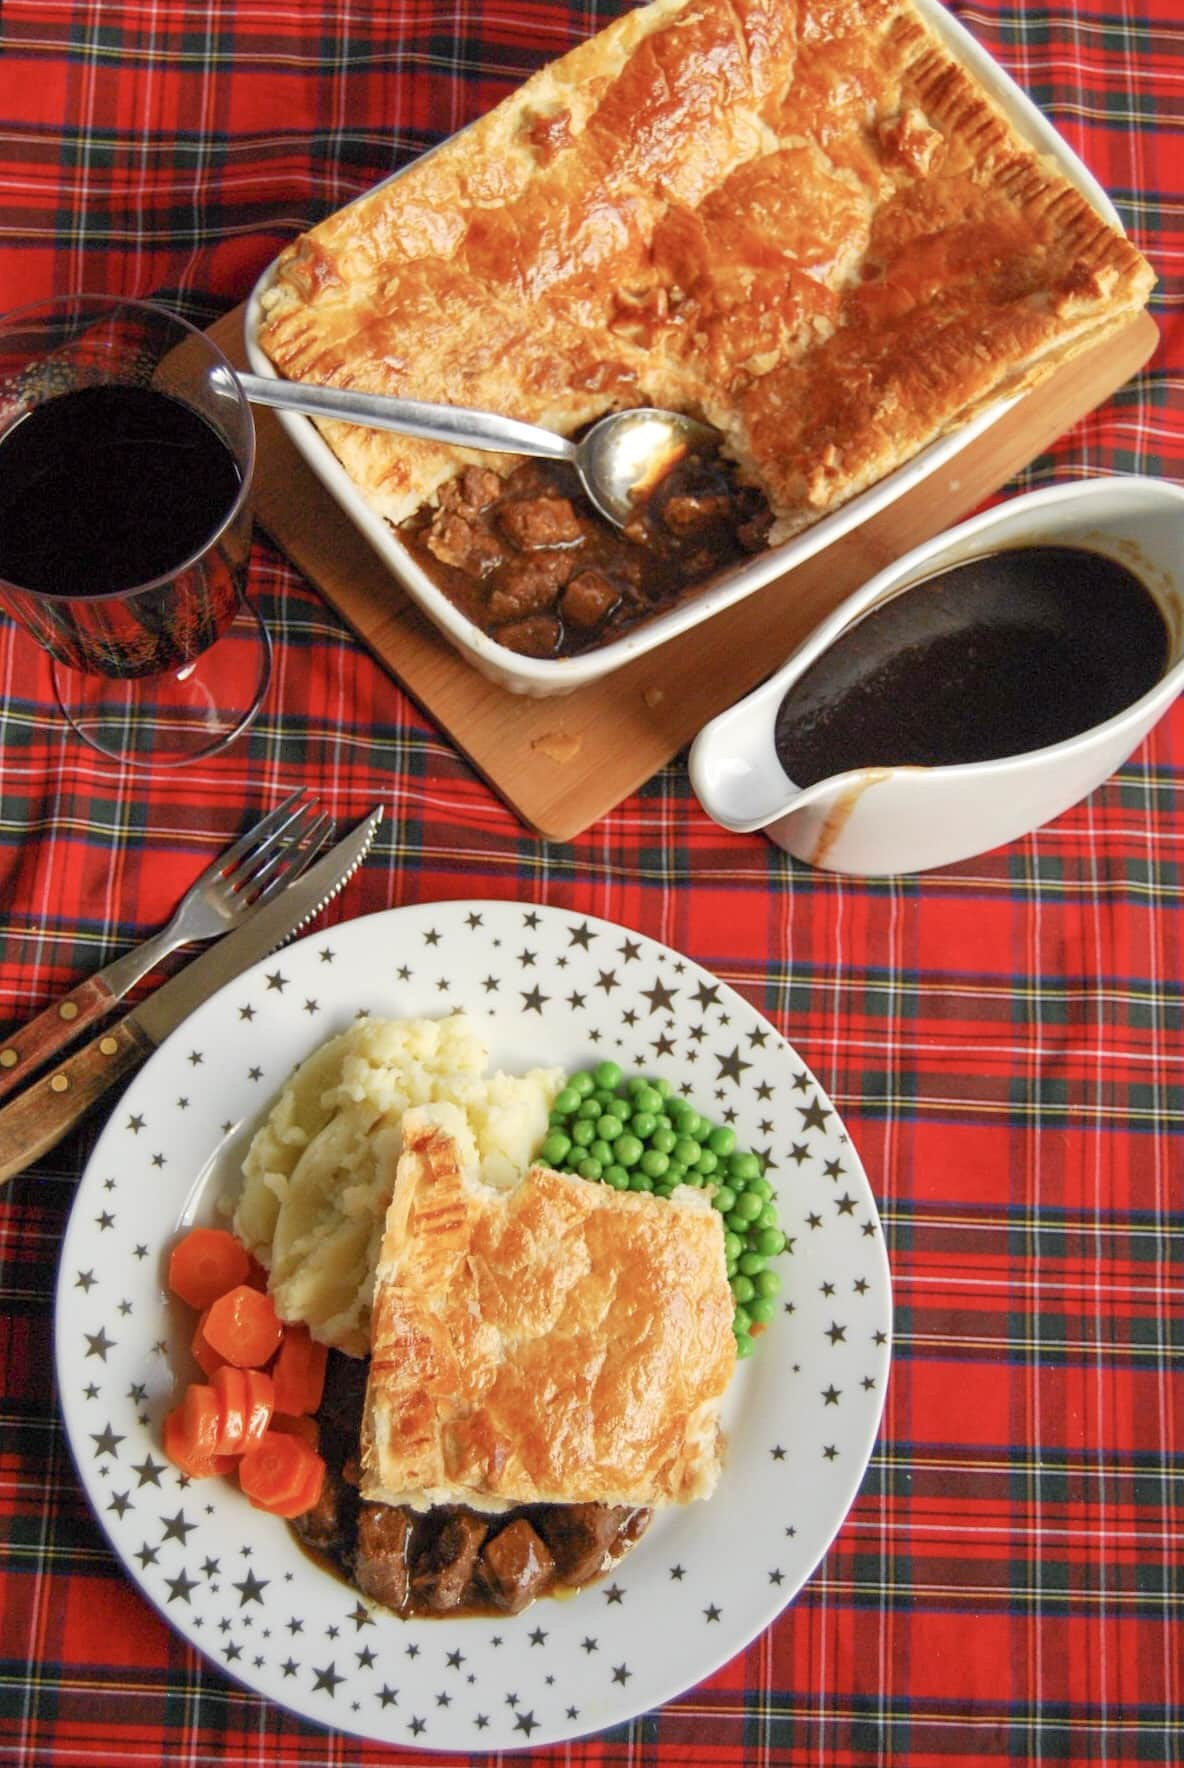 A flatlay photo of a gold and white star plate of steak pie with a puff pastry lid and beef chunks in gravy with mashed potatoes, peas and carrots. A jug of gravy and a large steak pie can also be seen in the top of the photo.